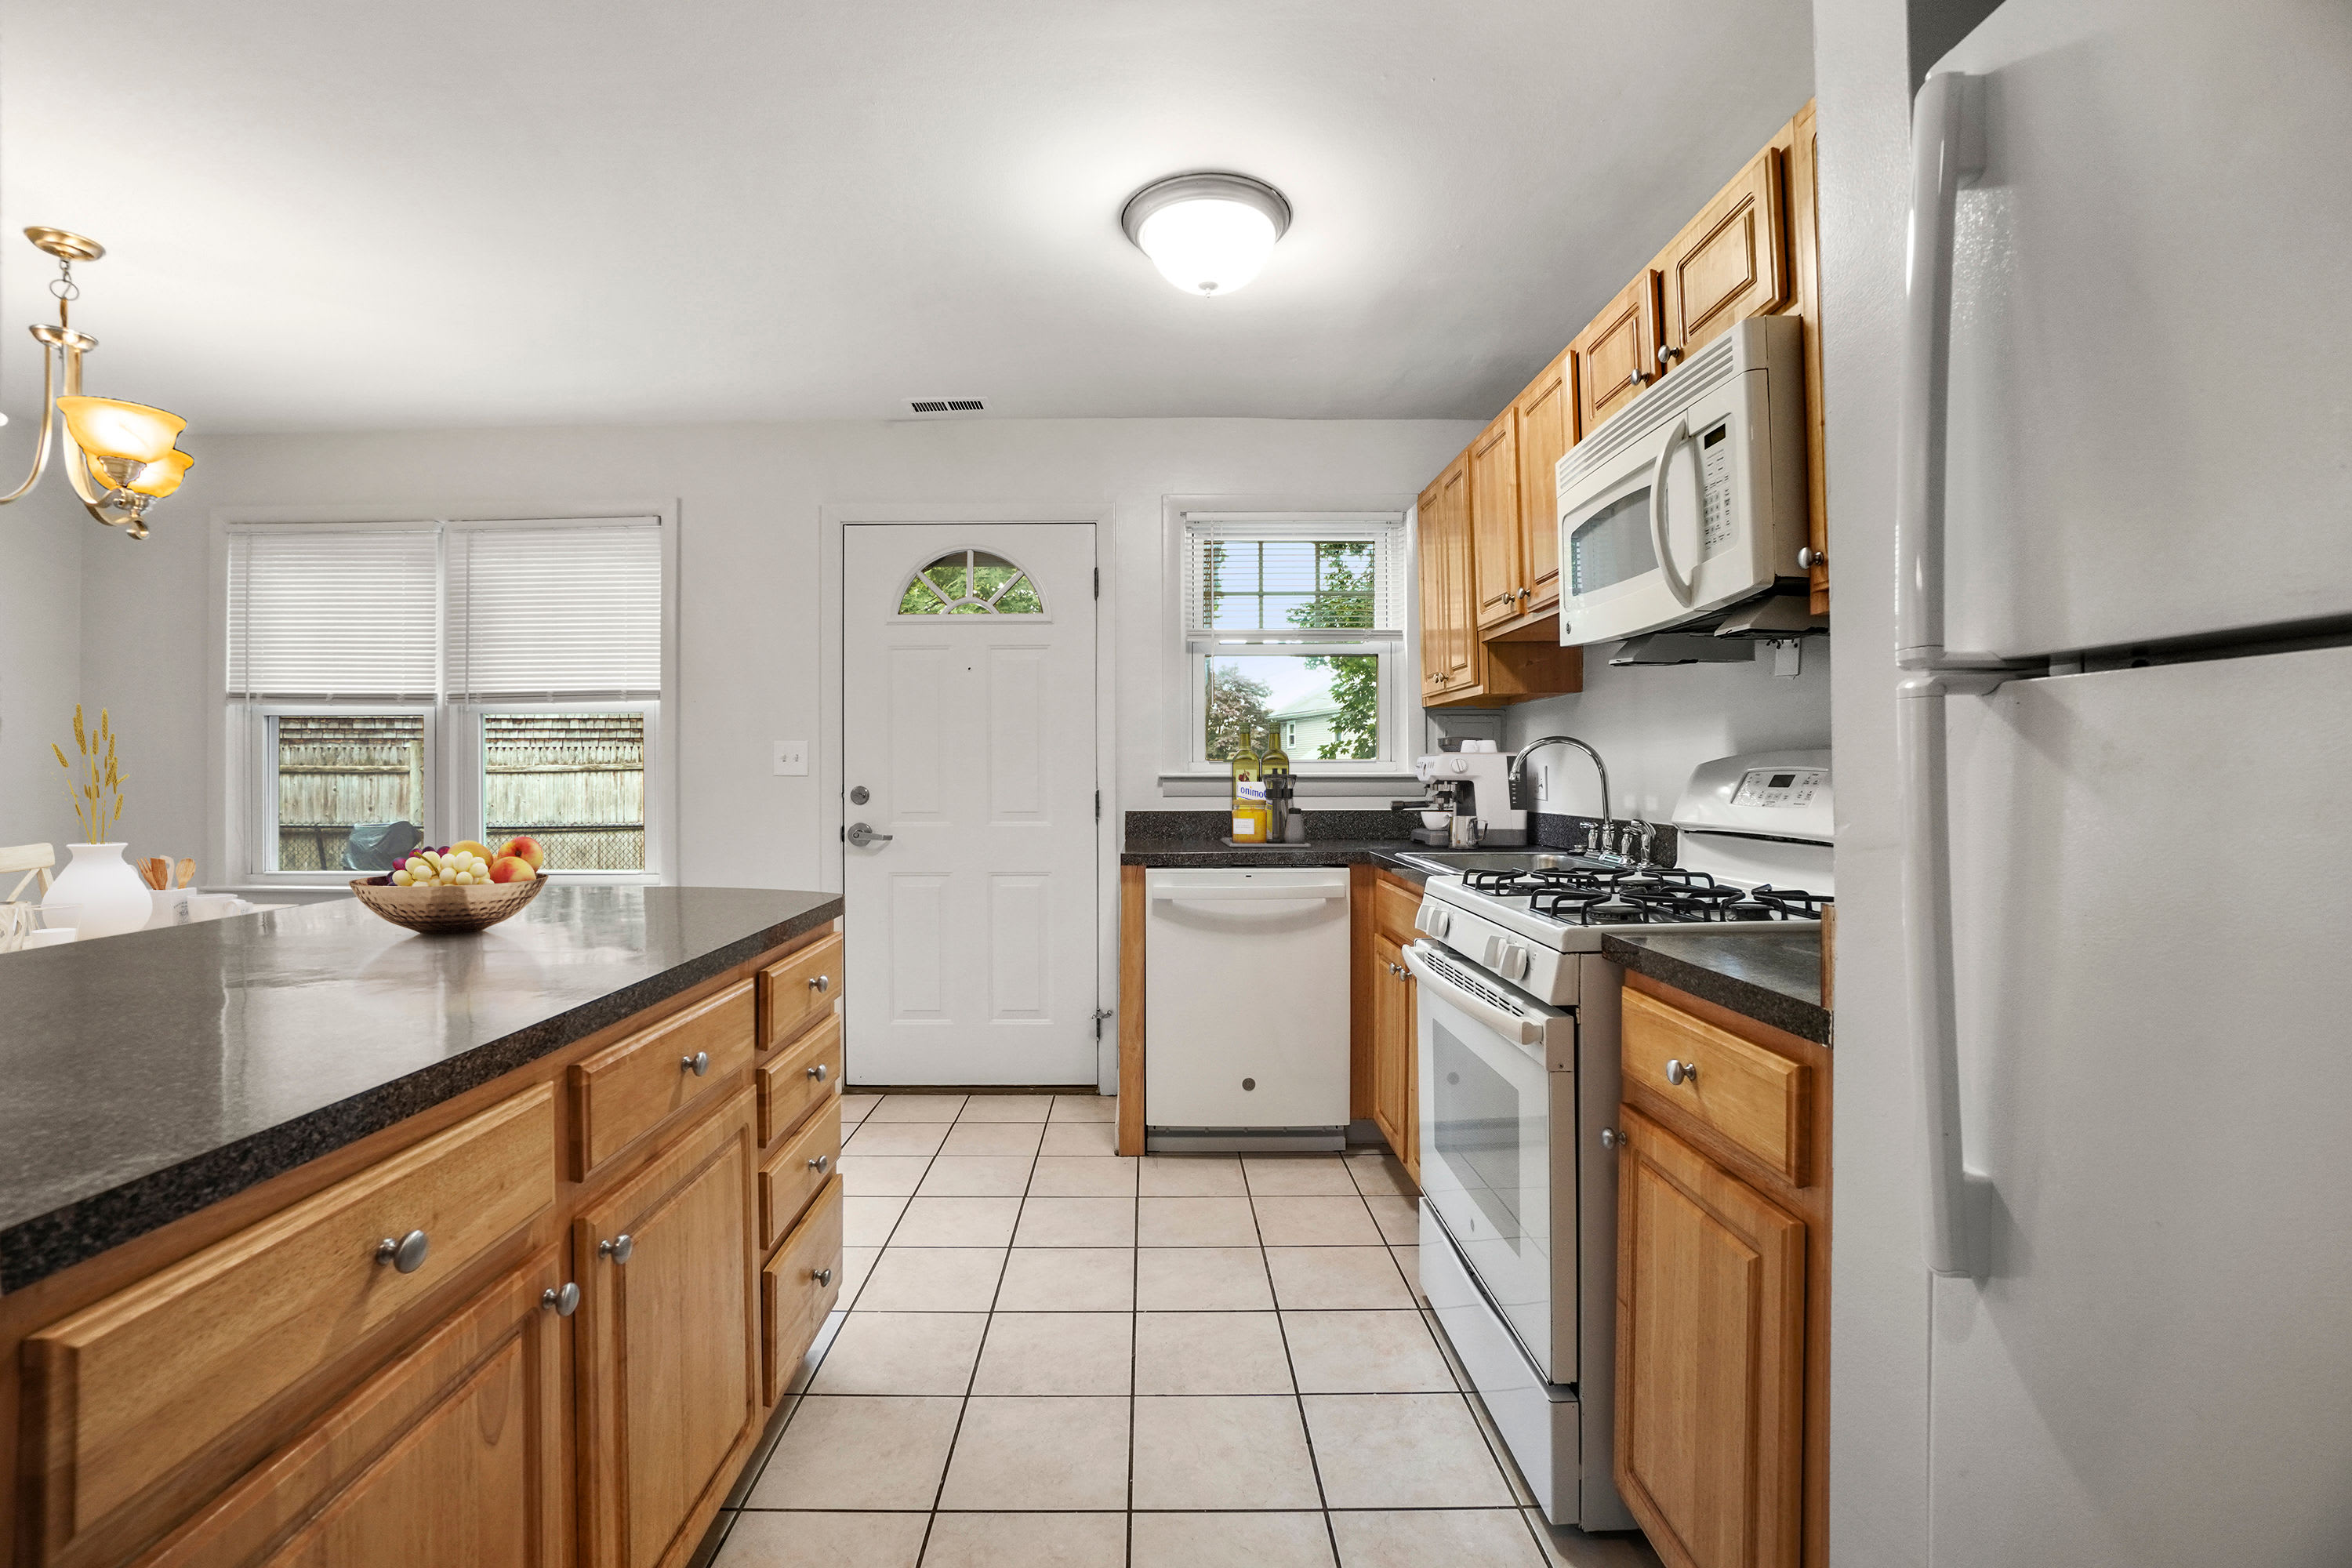 Rendered furnished kitchen at President Village in Fall River, Massachusetts